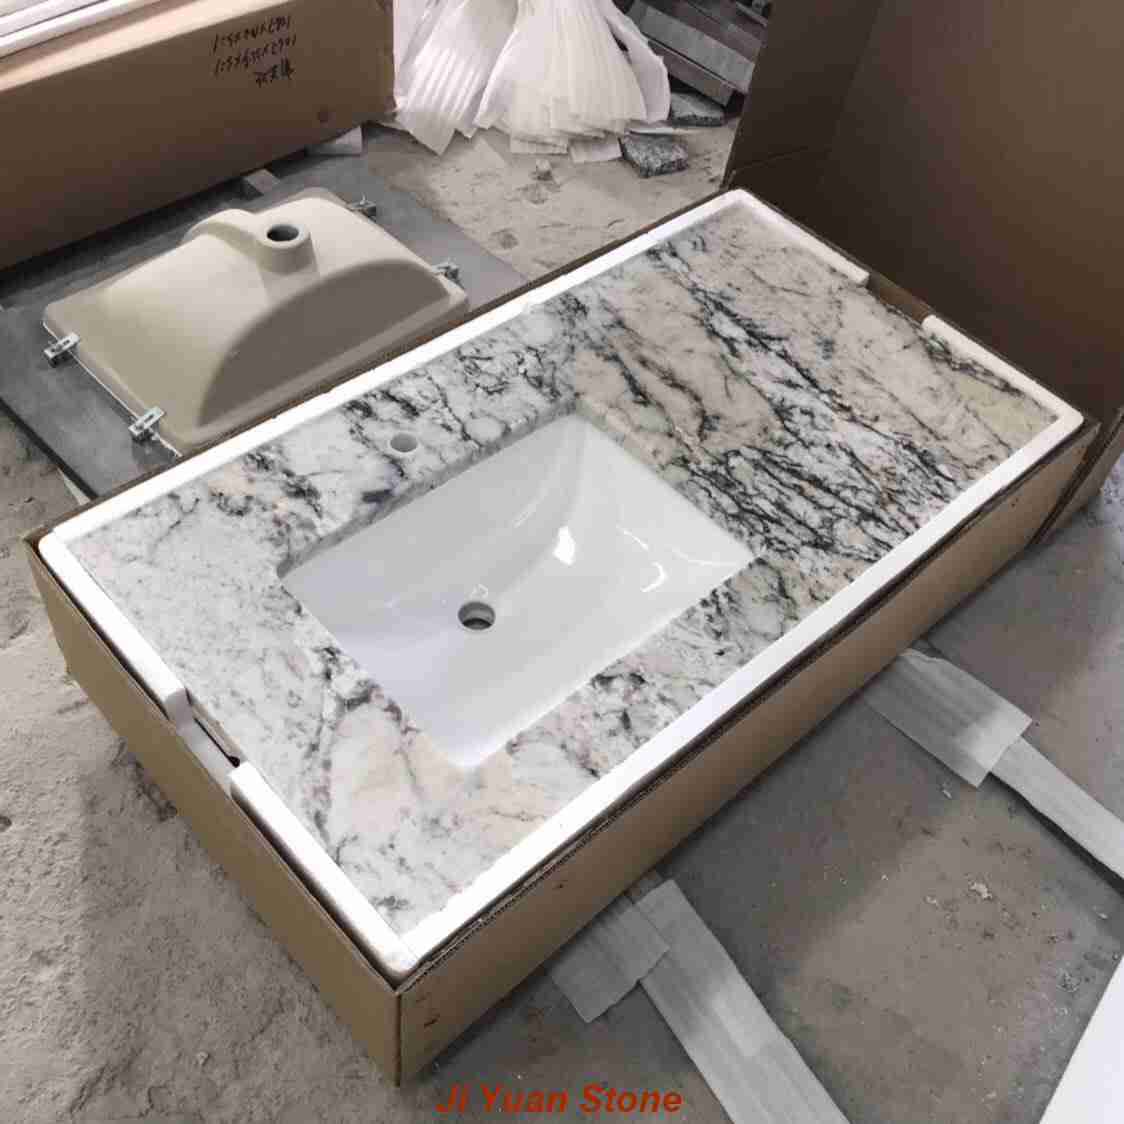 bathroom vanity and top 72 inch vanity top,quartz vanity countertops vanity tops near me37 vanity top with integrated sink,31 inch bathroom vanity with top